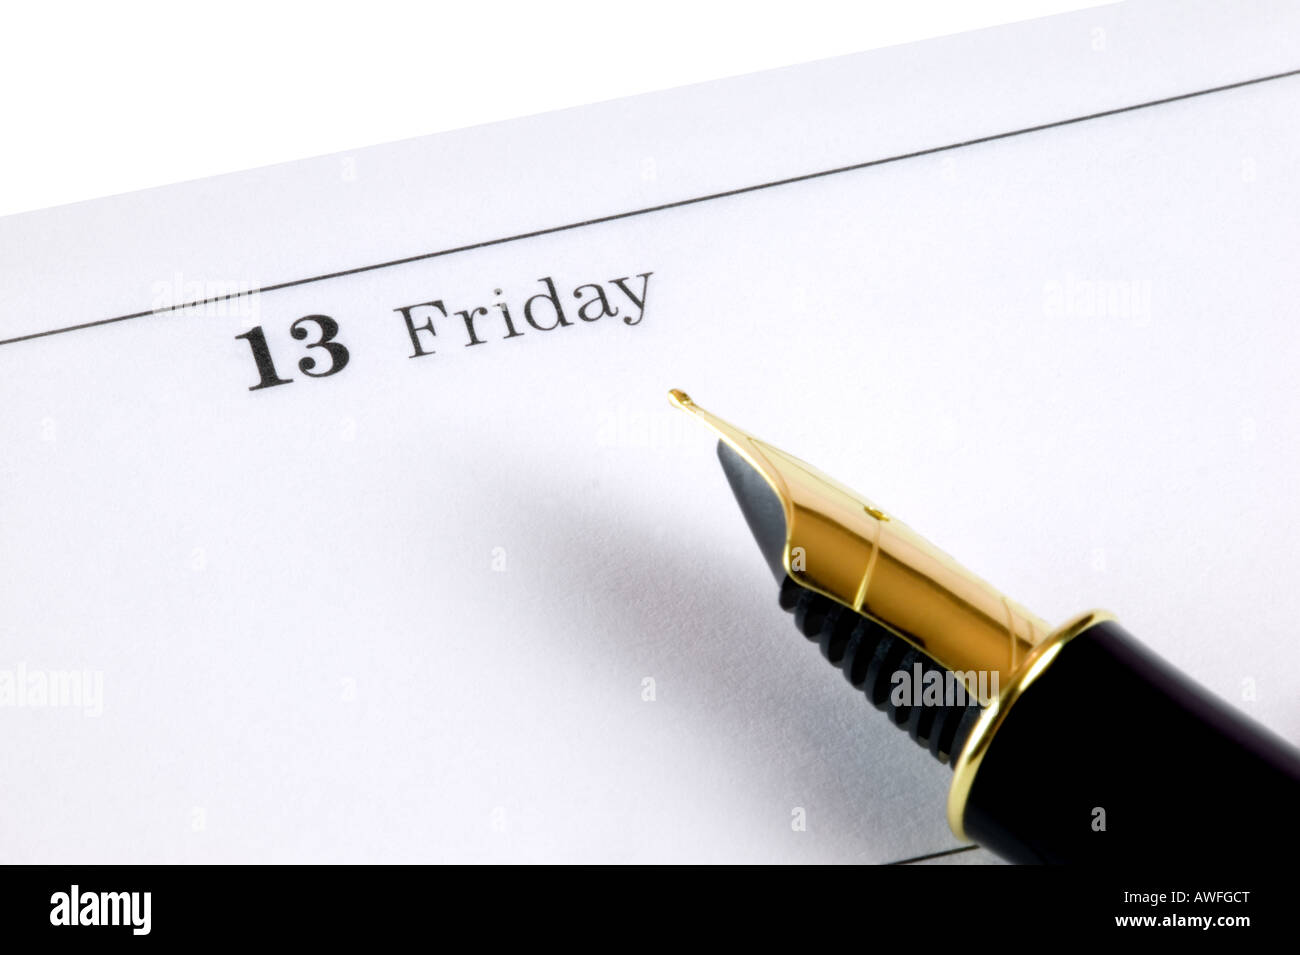 Friday 13th on a diary page with a gold nibbed fountain pen - Stock Image